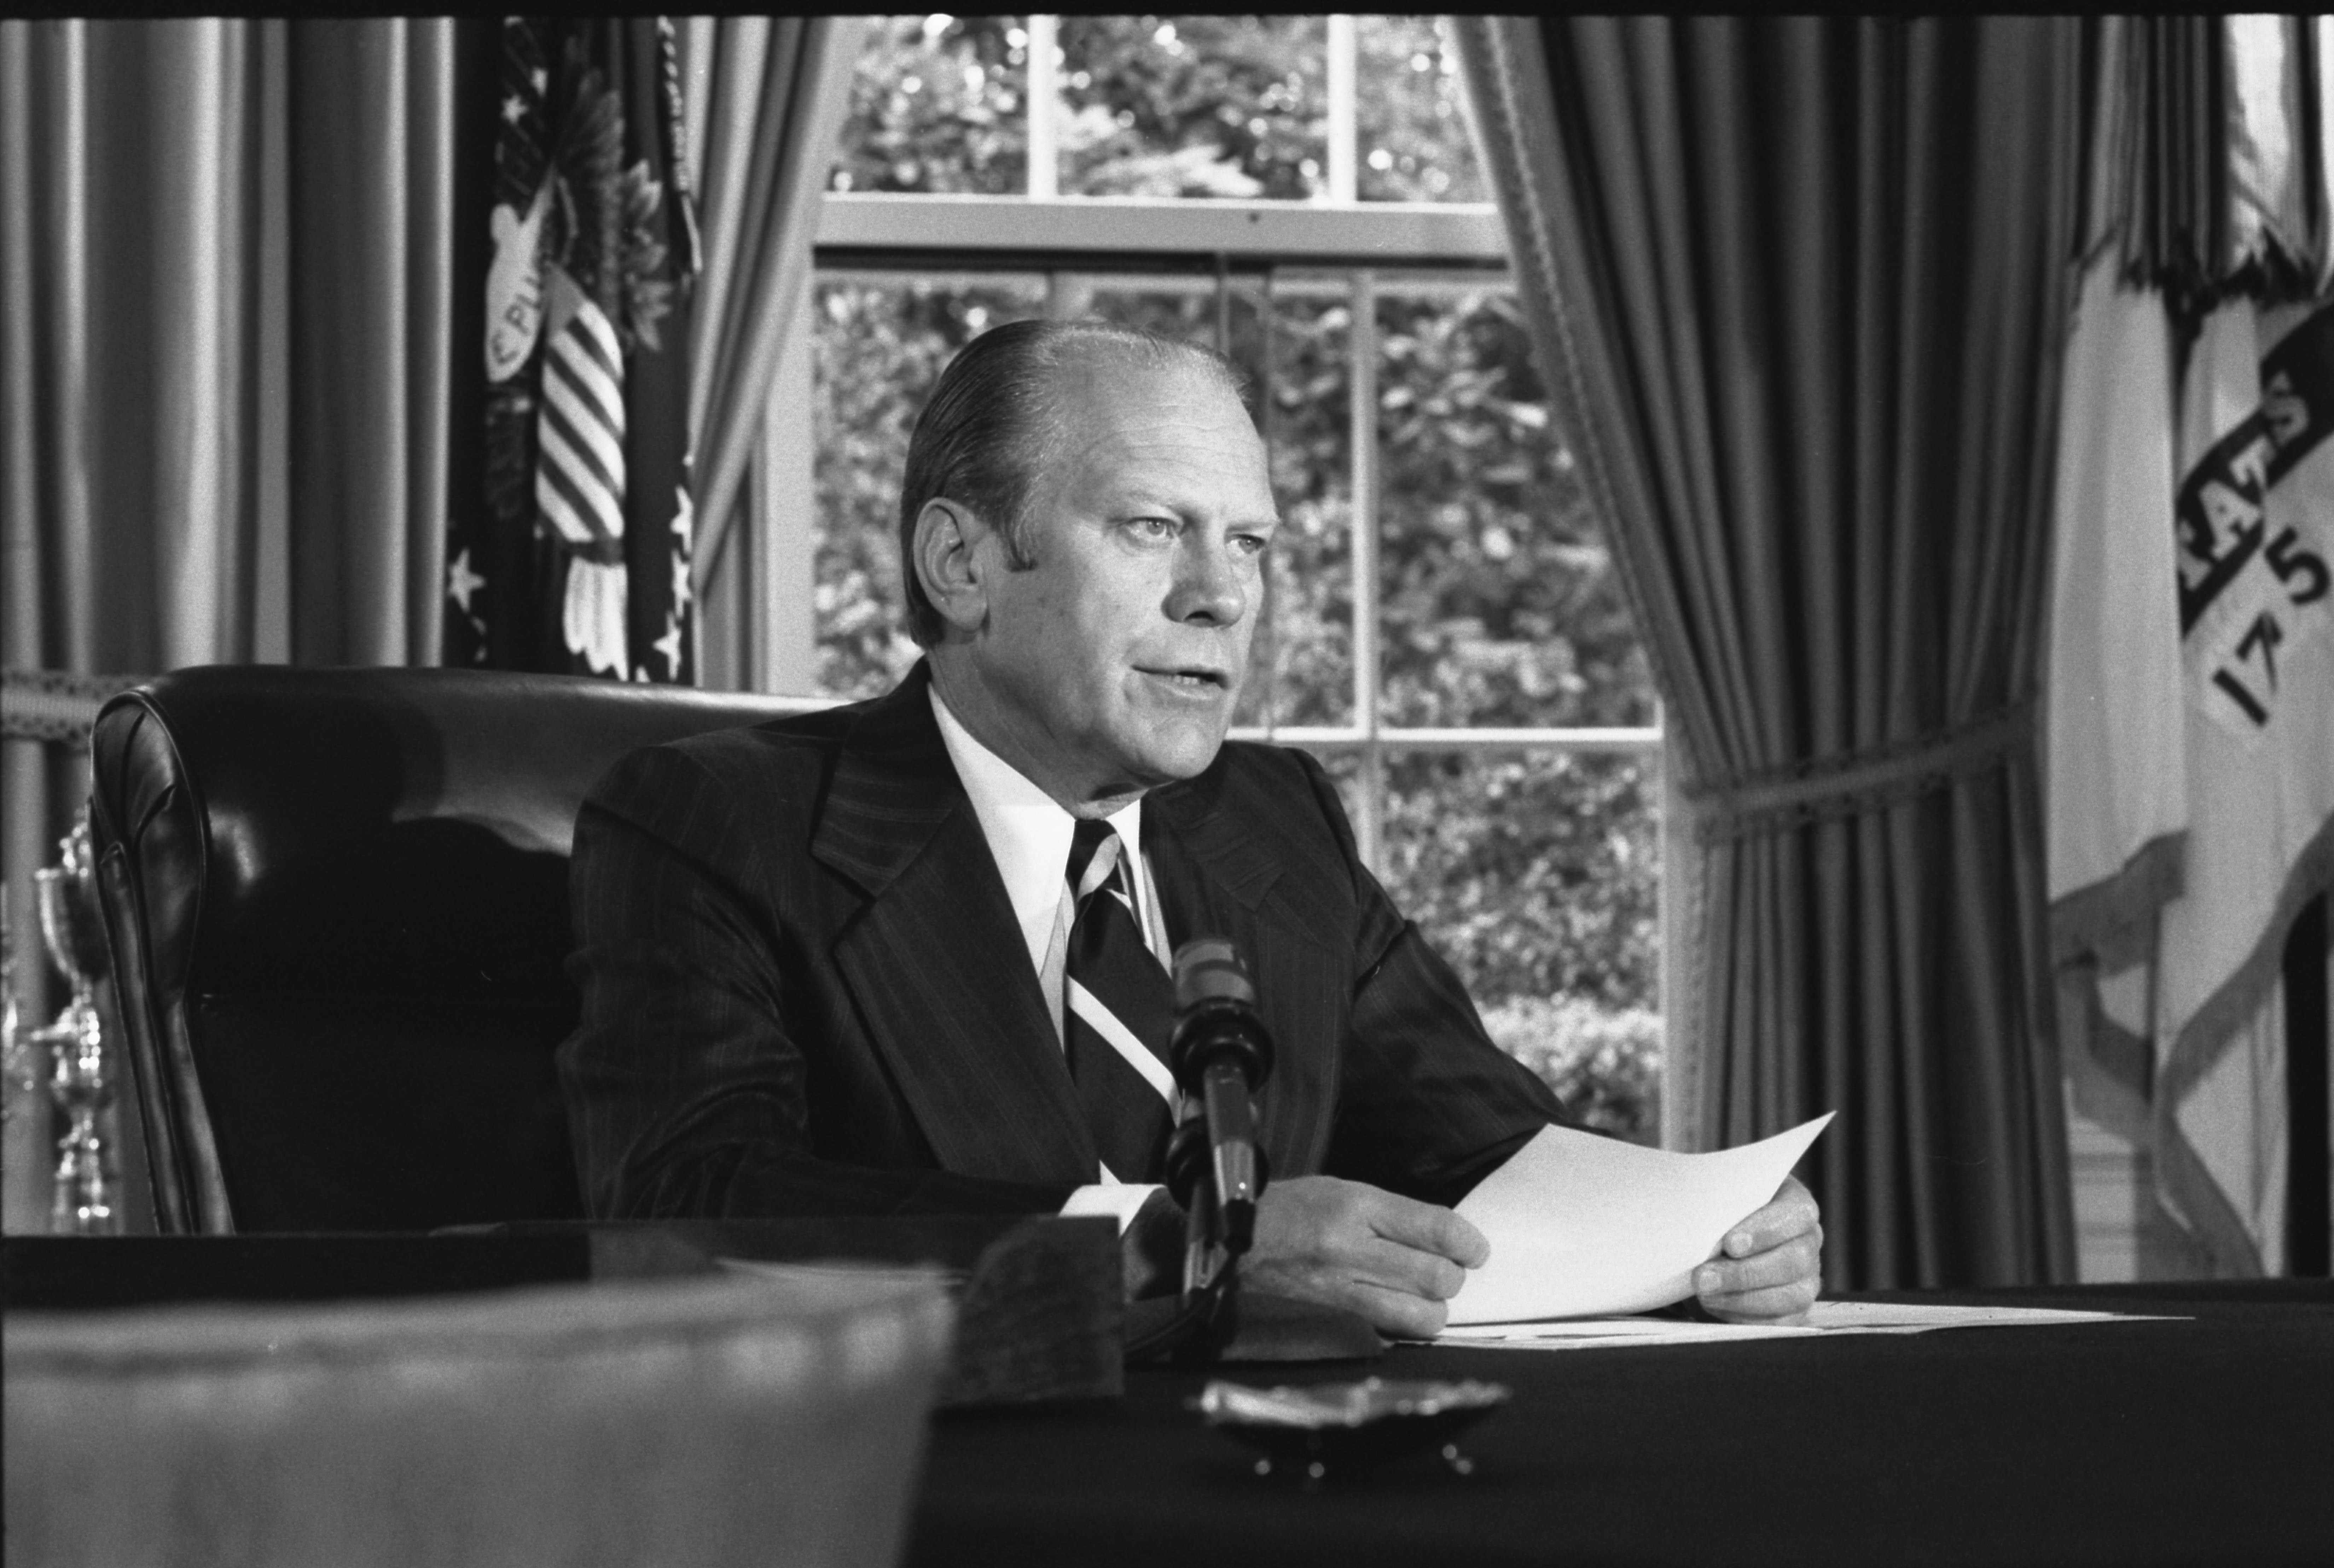 Photograph of President Gerald Ford Announcing His Decision to Grant a Pardon to Former President Richard Nixon, 09/08/1974. (National Archives Identifier 7140608)